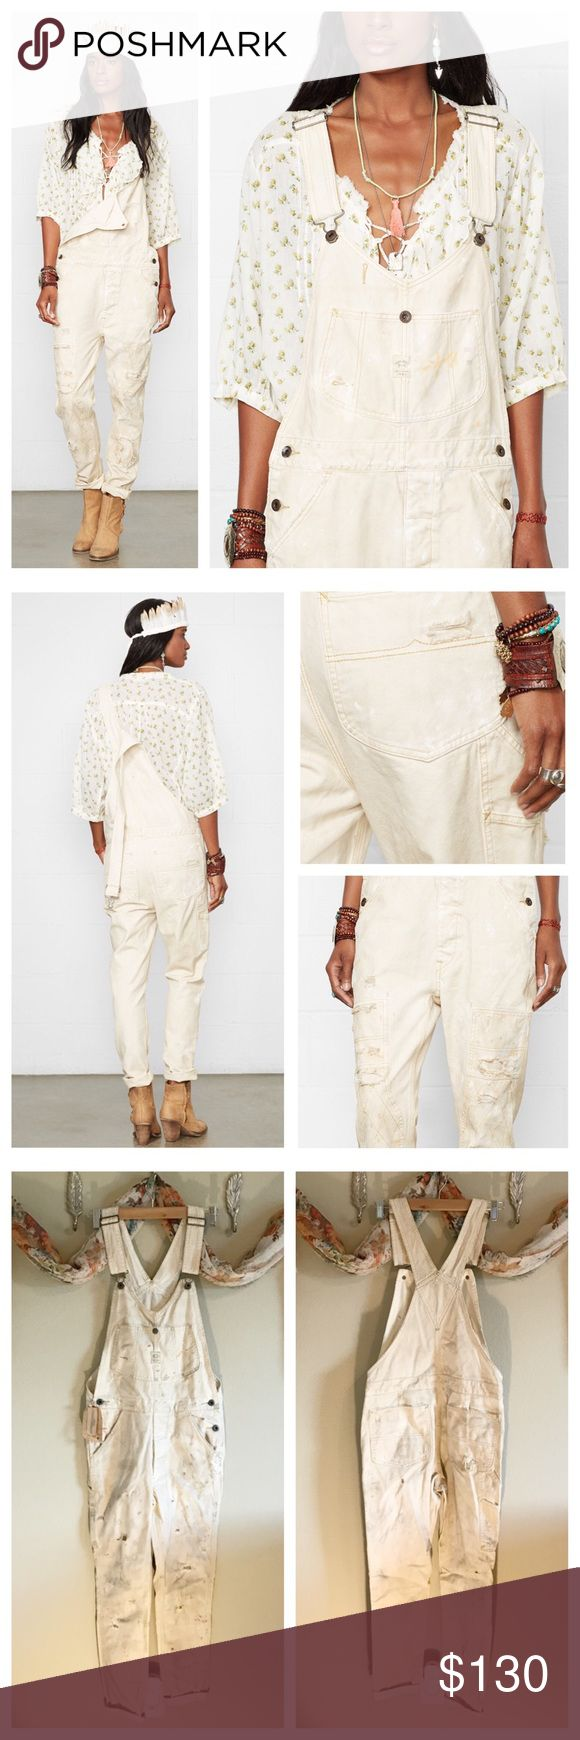 Denim & Supply Paint Splatter Overalls XS Classic painters overalls in a feminine cut, they come pre-splattered with distressing throughout. Perfect for layering and new with $298 tag! Style: Kinfolk Color: Natural Size: XS Denim & Supply Ralph Lauren Jeans Overalls